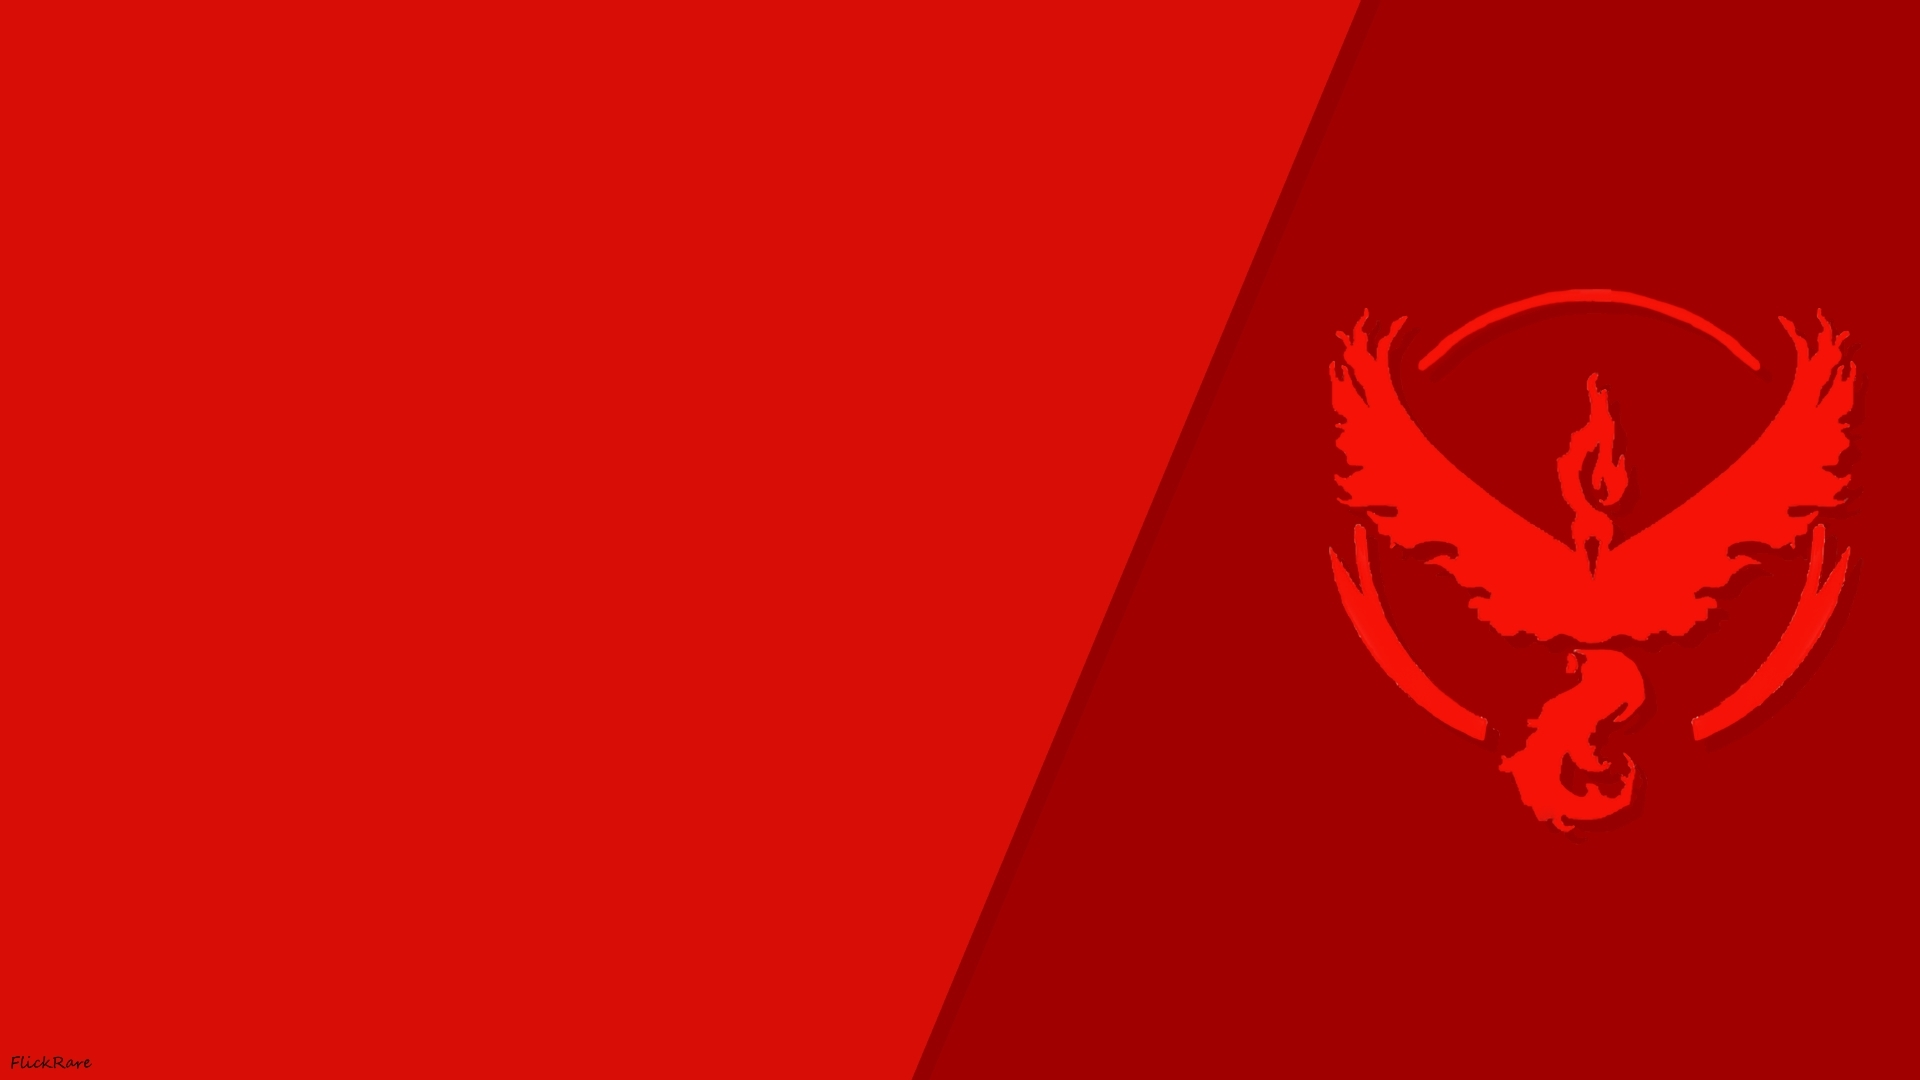 Pokemon Go Simple Team Valor Wallpaper By FlickRare On